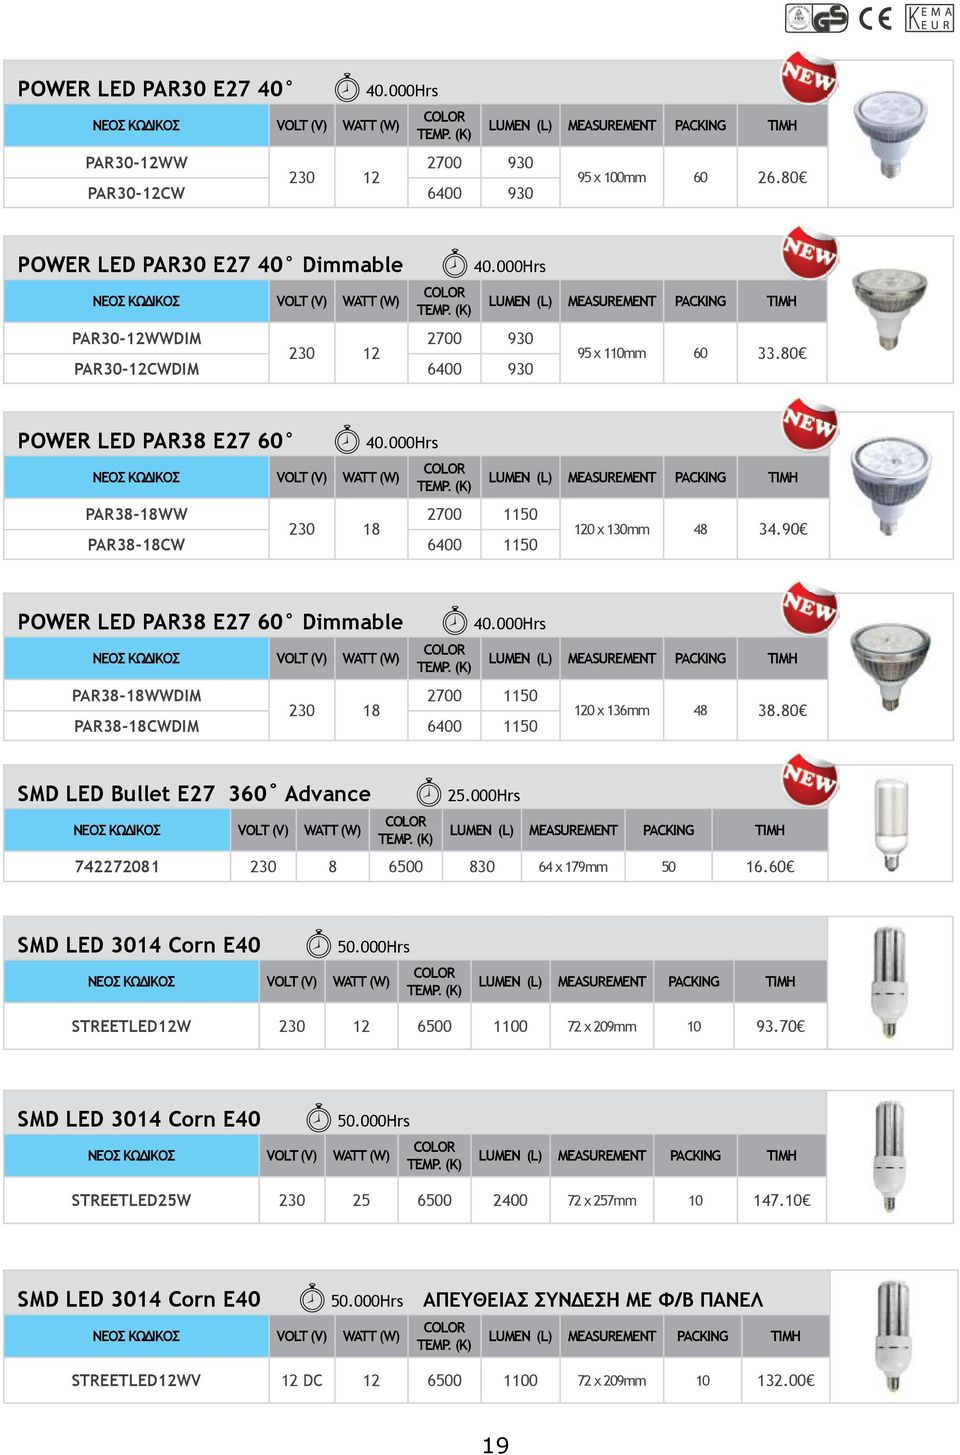 90 POWER LED PAR38 E27 60 Diable 40.000Hrs PAR38-18WWDIM 1150 18 PAR38-18CWDIM 6400 1150 120 x 136 48 38.80 SMD LED Bullet E27 360 Advance 742272081 8 6500 830 64 x 179 50 16.